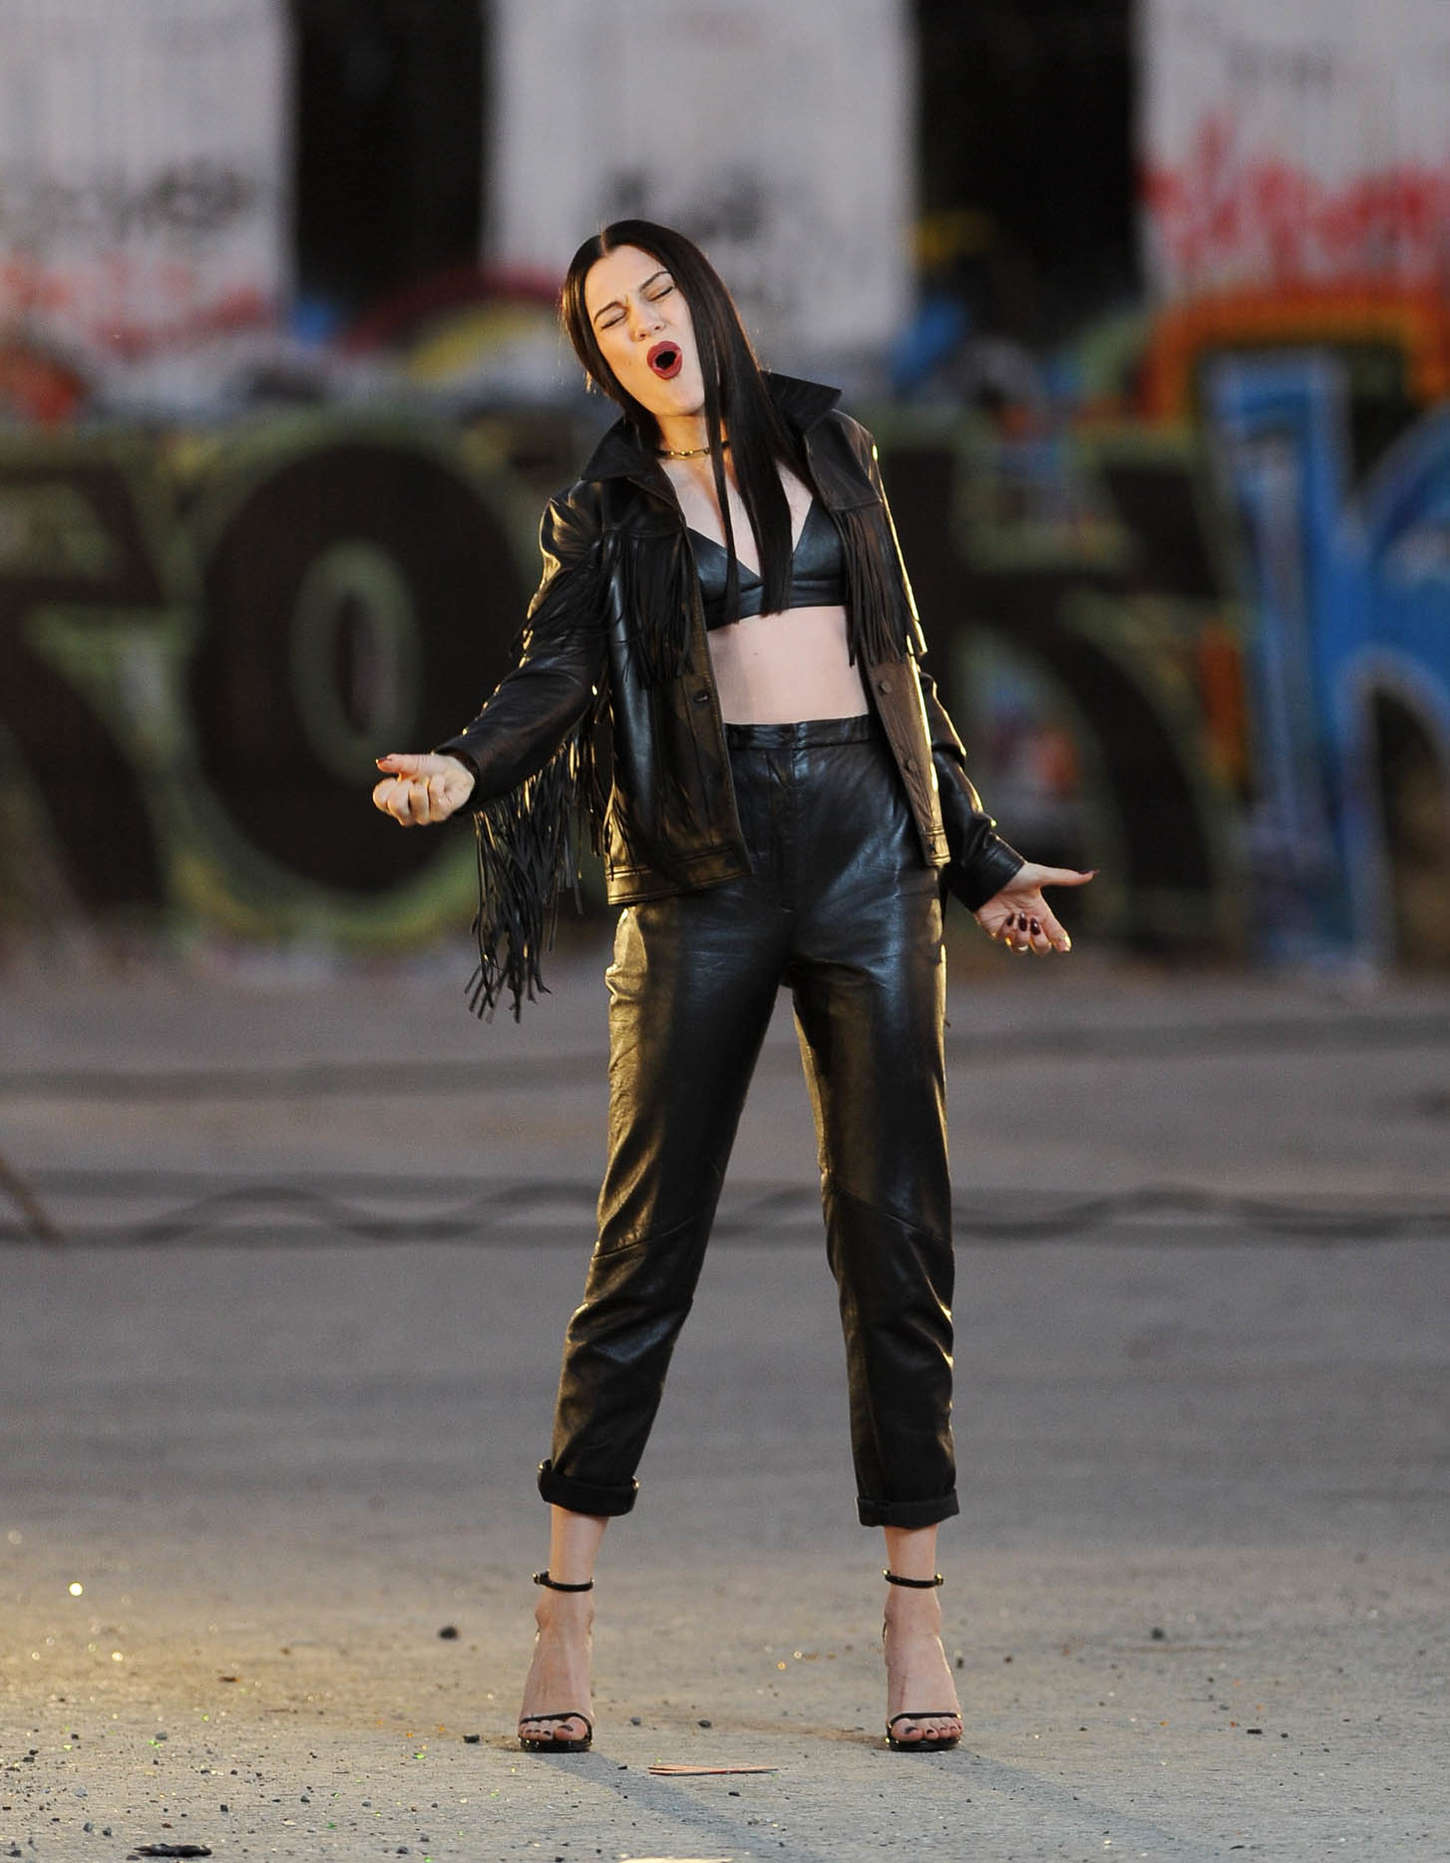 Jessie J on set of her new music video 'Masterpiece' in Los Angeles